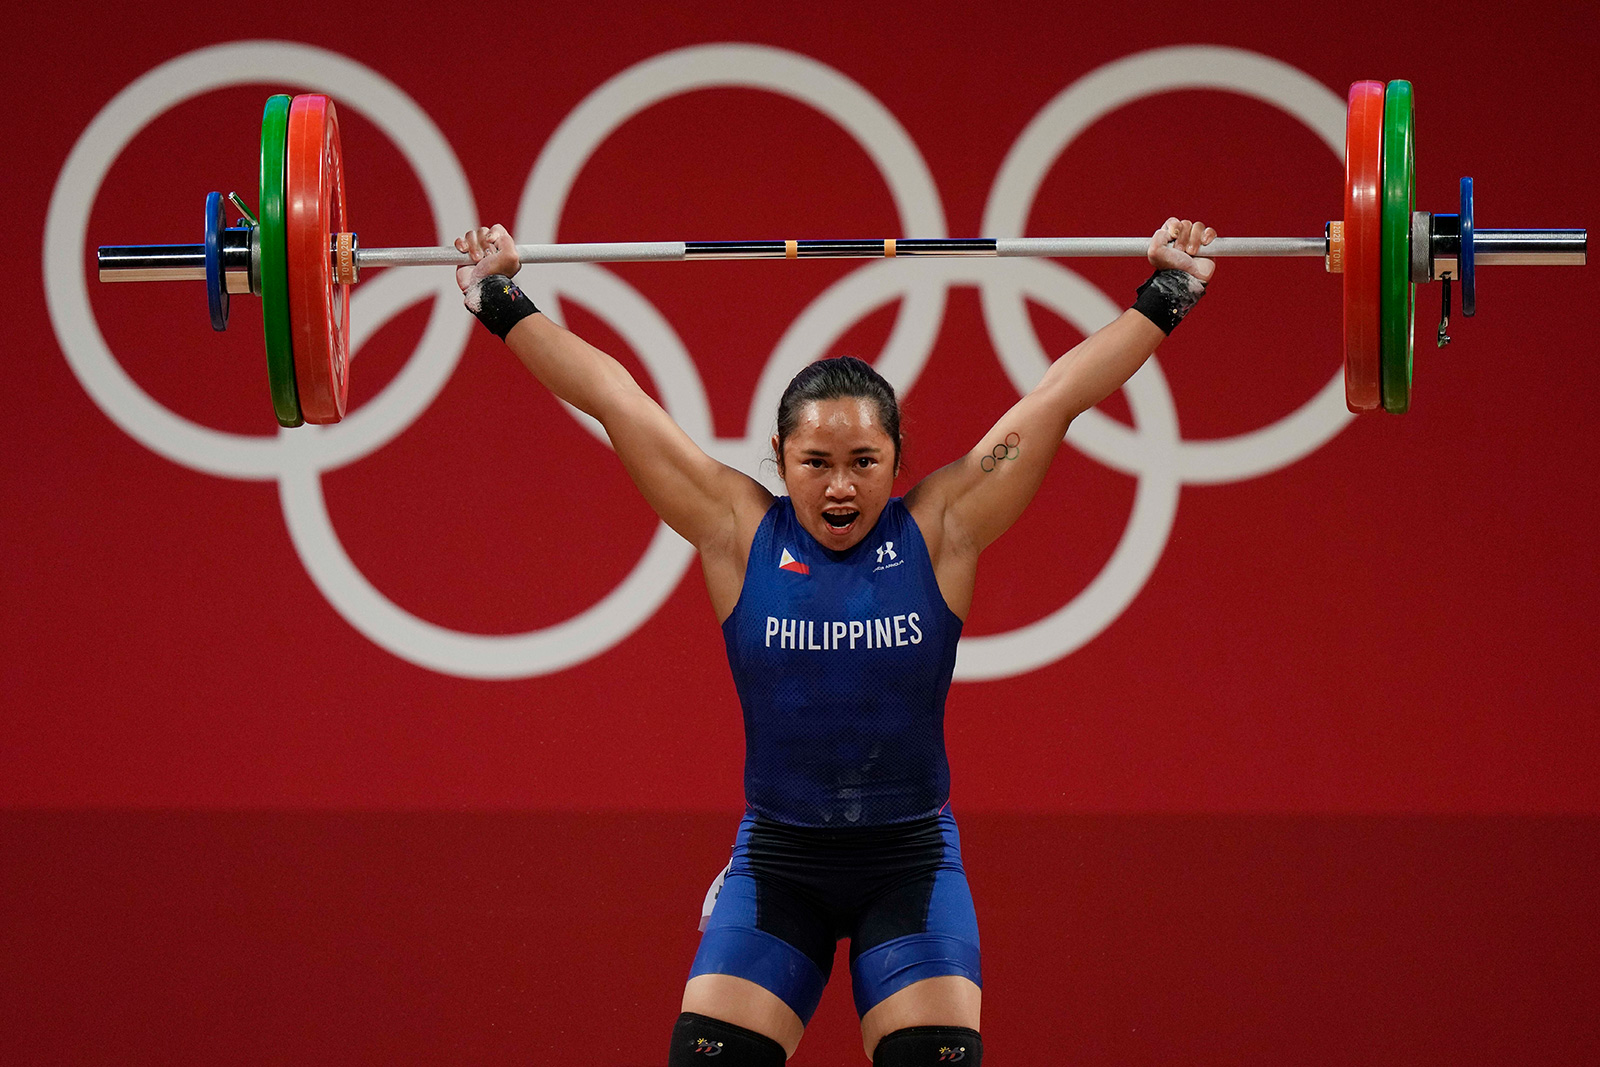 The Philippines' Hidilyn Diaz competes in the 55kg weightlifting event on July 26.